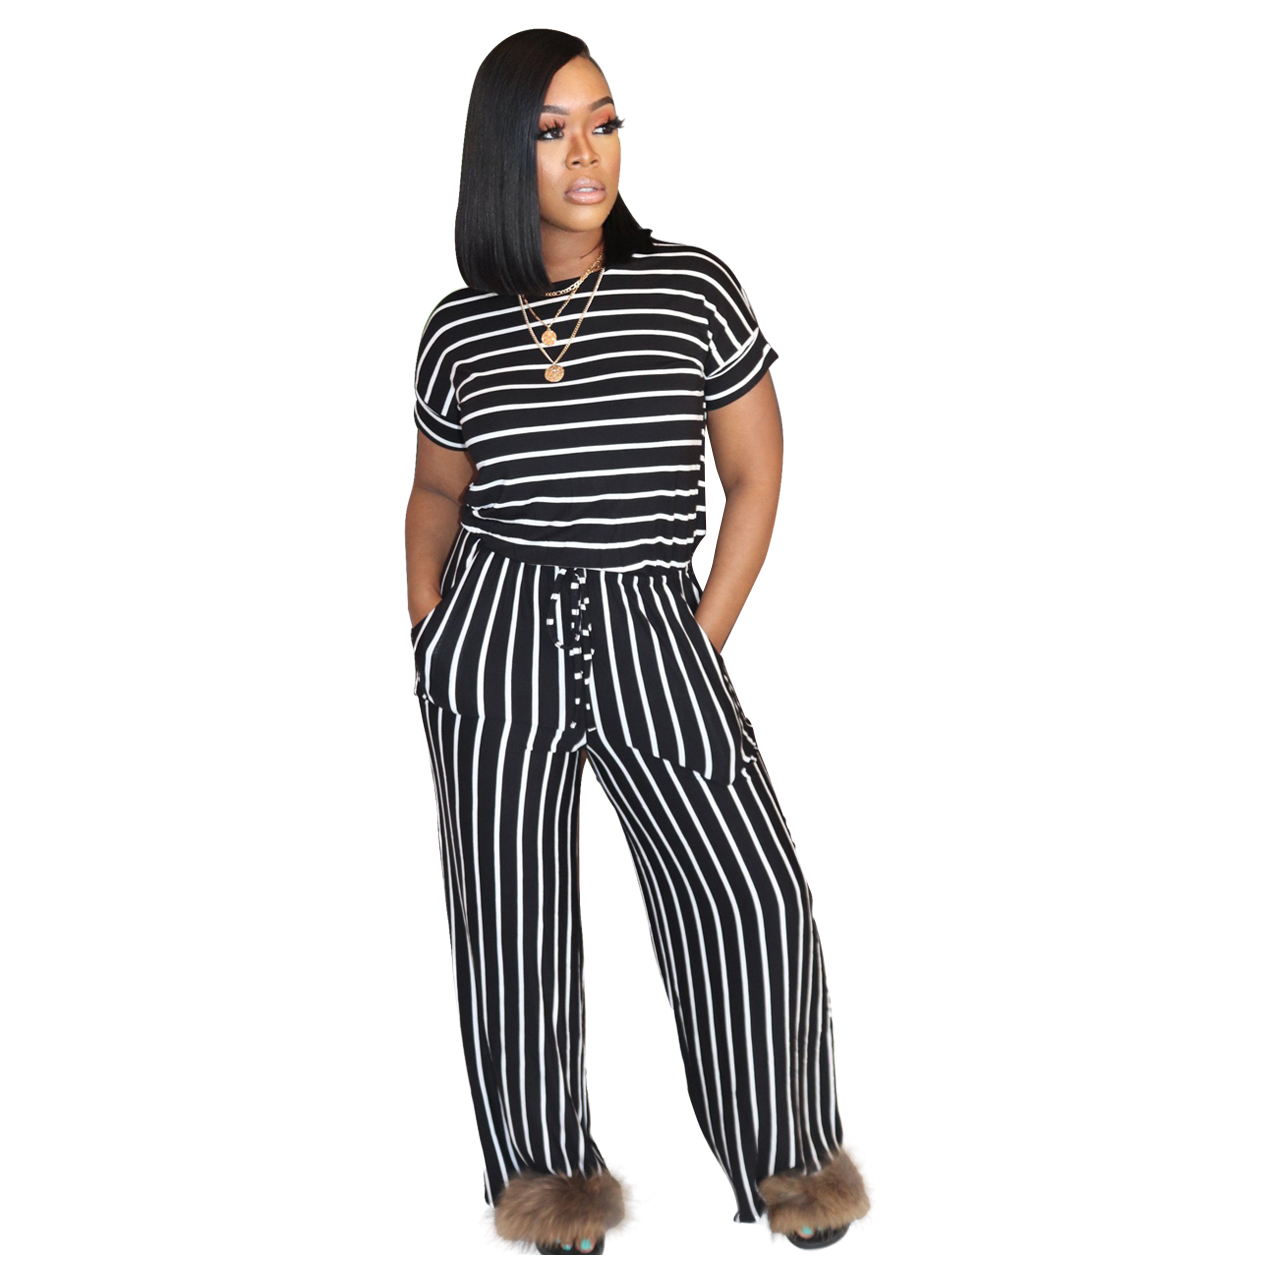 Had8081175a7c4a35a9aa7106180a4fe7i - Fashion Women Stripes Jumpsuits Summer New Arrival Short Sleeves Crew Neck Women Casual Rompers Loose Daily Wear Outfits